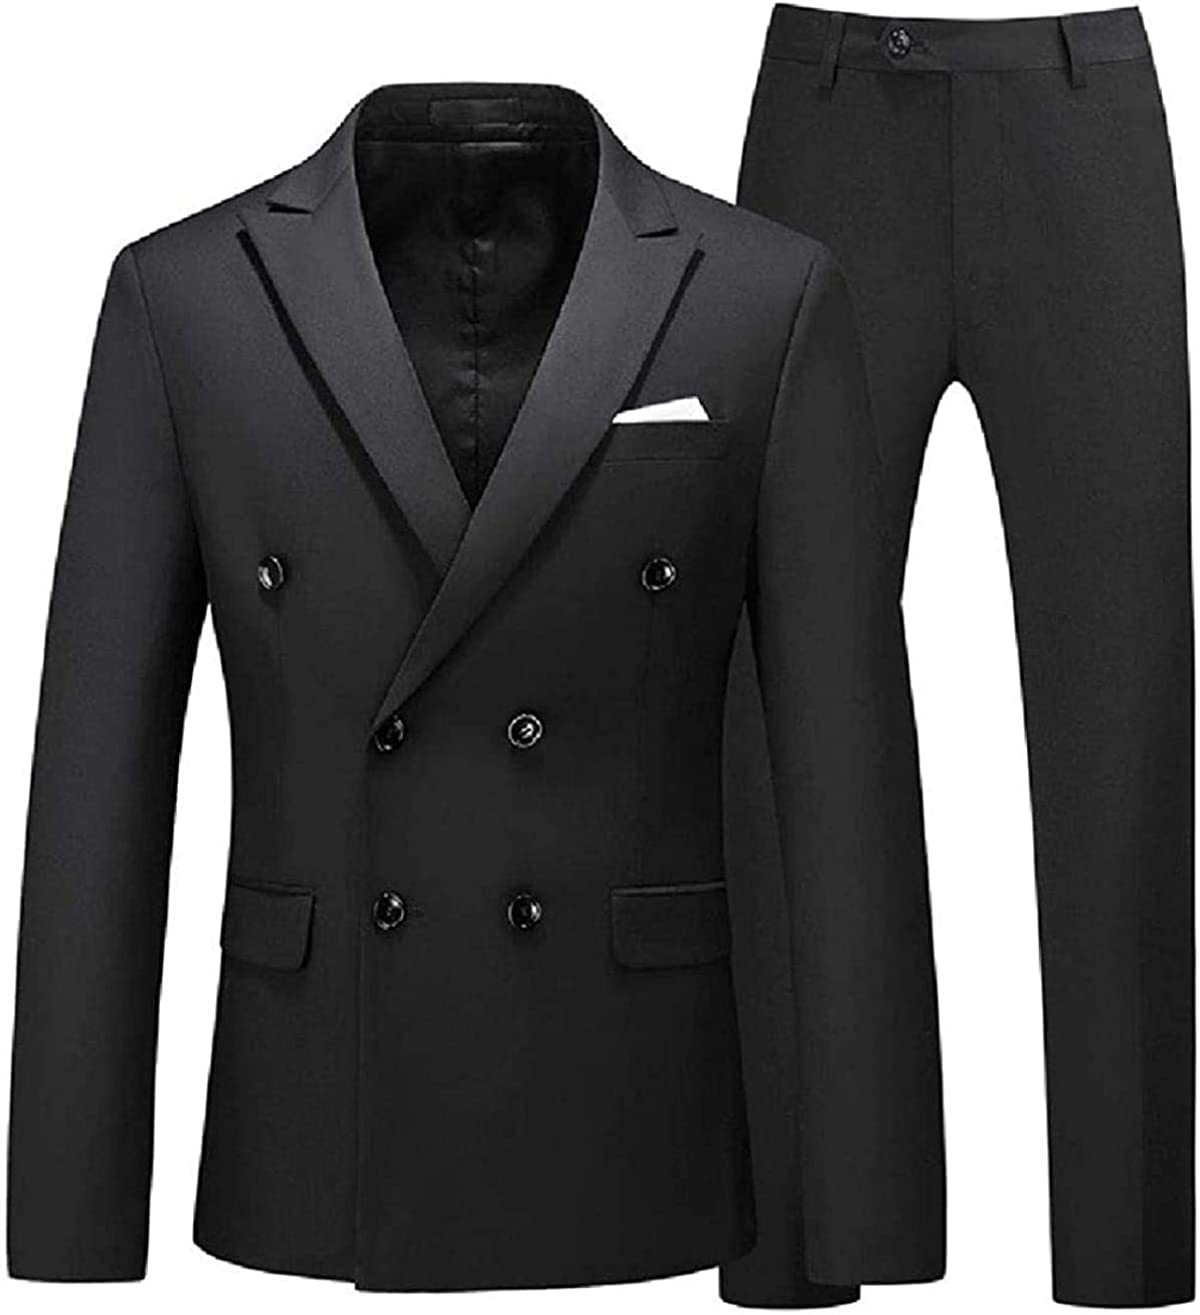 CHENYINJJ Men Long Sleeve Lapel Double Breasted Jacket & Pants 2-Piece Suit